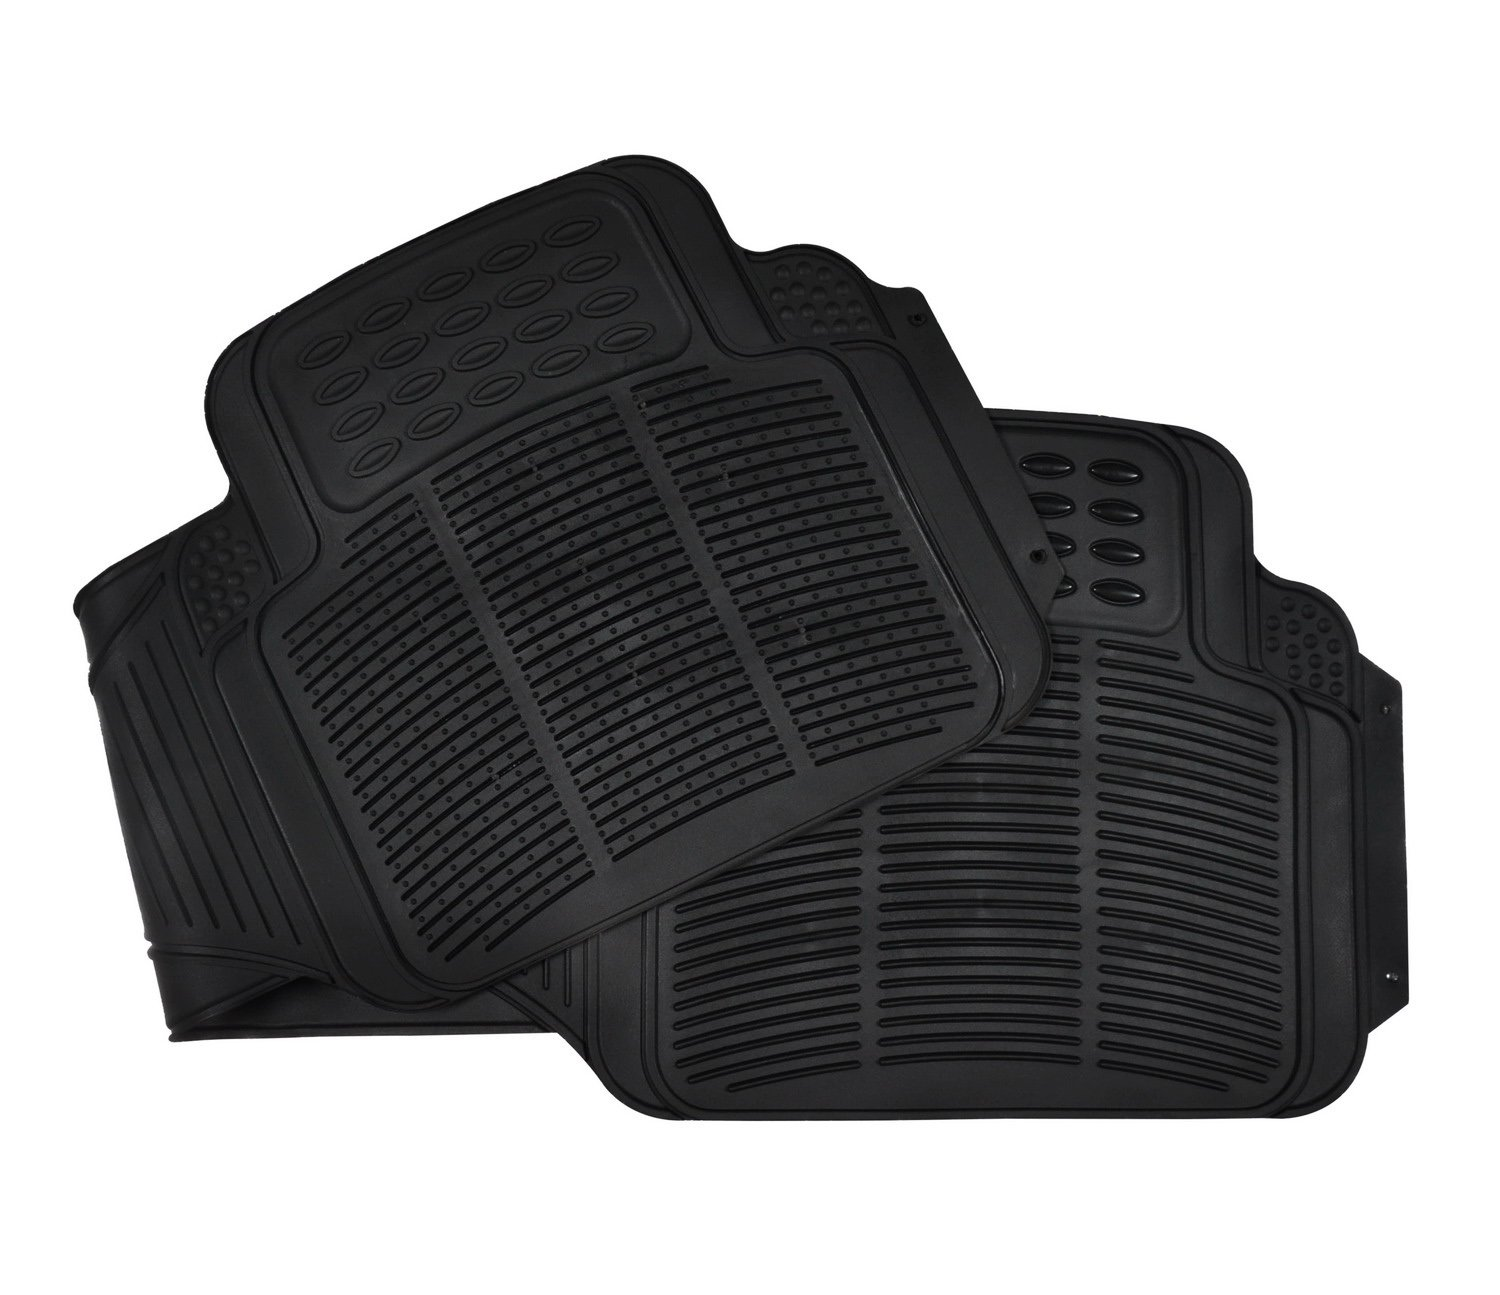 Rubber Floor Mats 3PC Set Floor Front Rear Rubber Mats All Weather Protection Universal Car Truck Suv Black